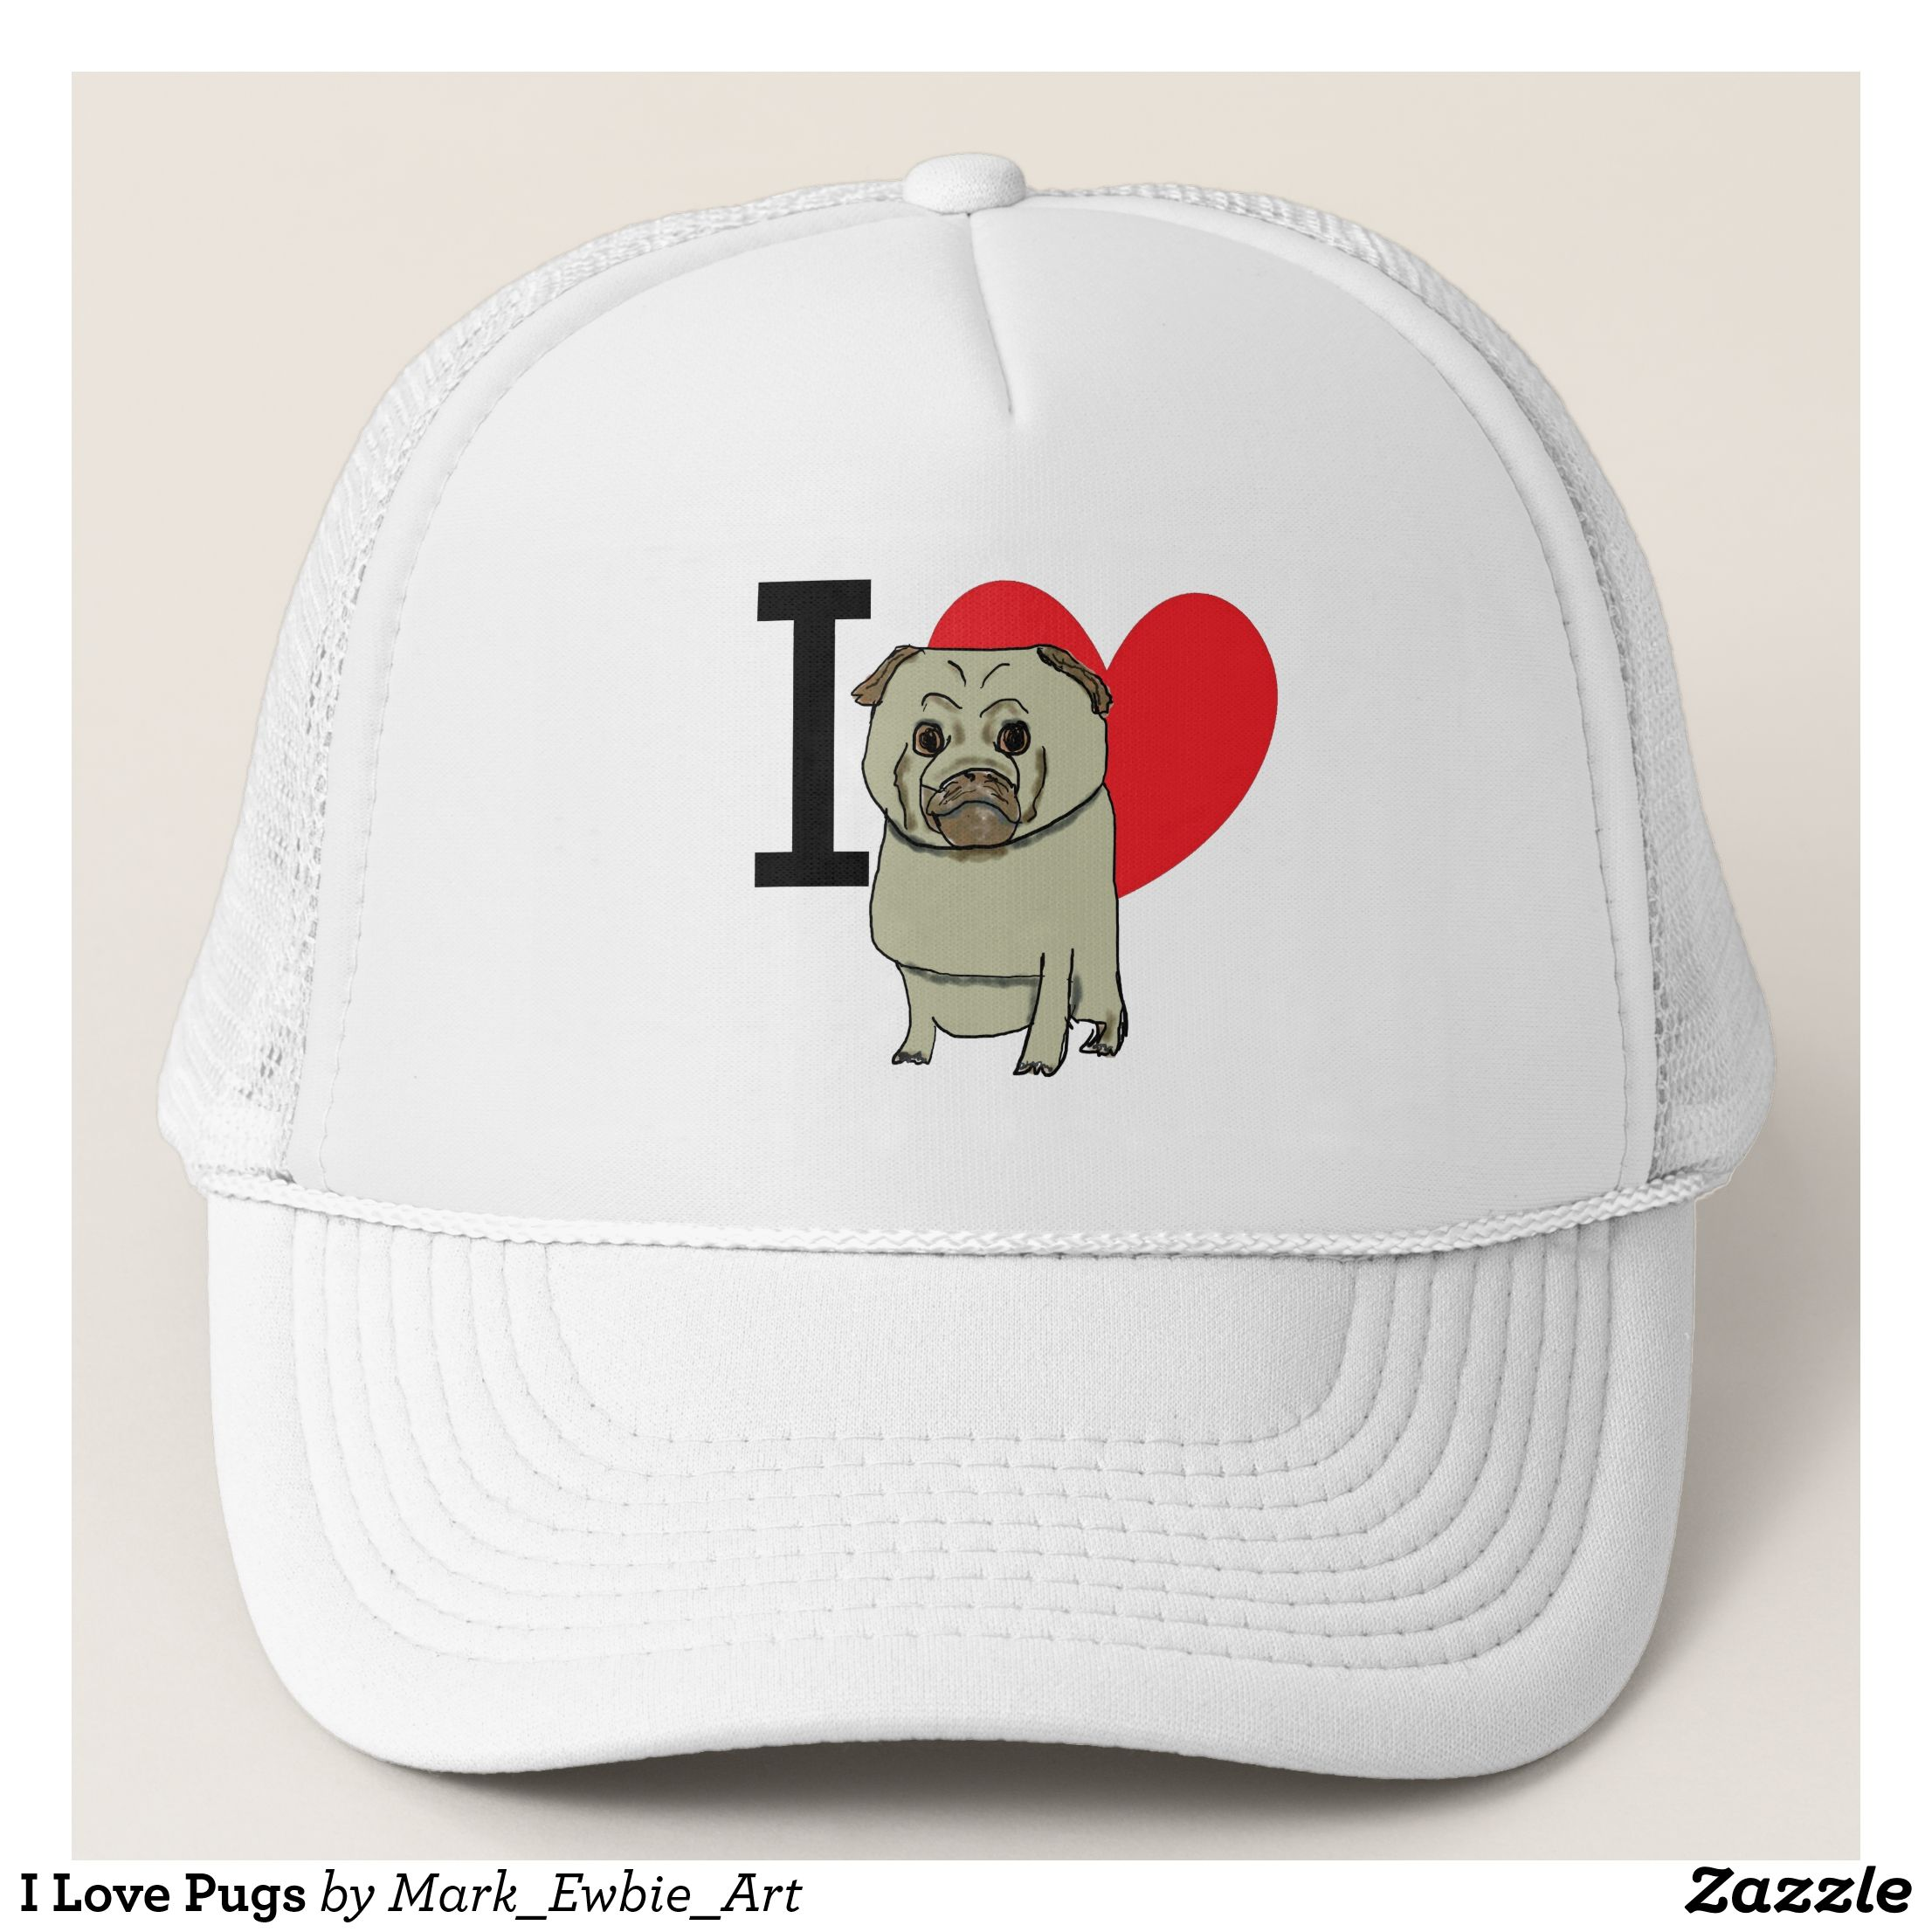 I Love Pugs Trucker Hat - Urban Hunter Fisher Farmer Redneck Hats By  Talented Fashion And Graphic Designers -  hats  truckerhat  mensfashion   apparel ... f5972cb56f5